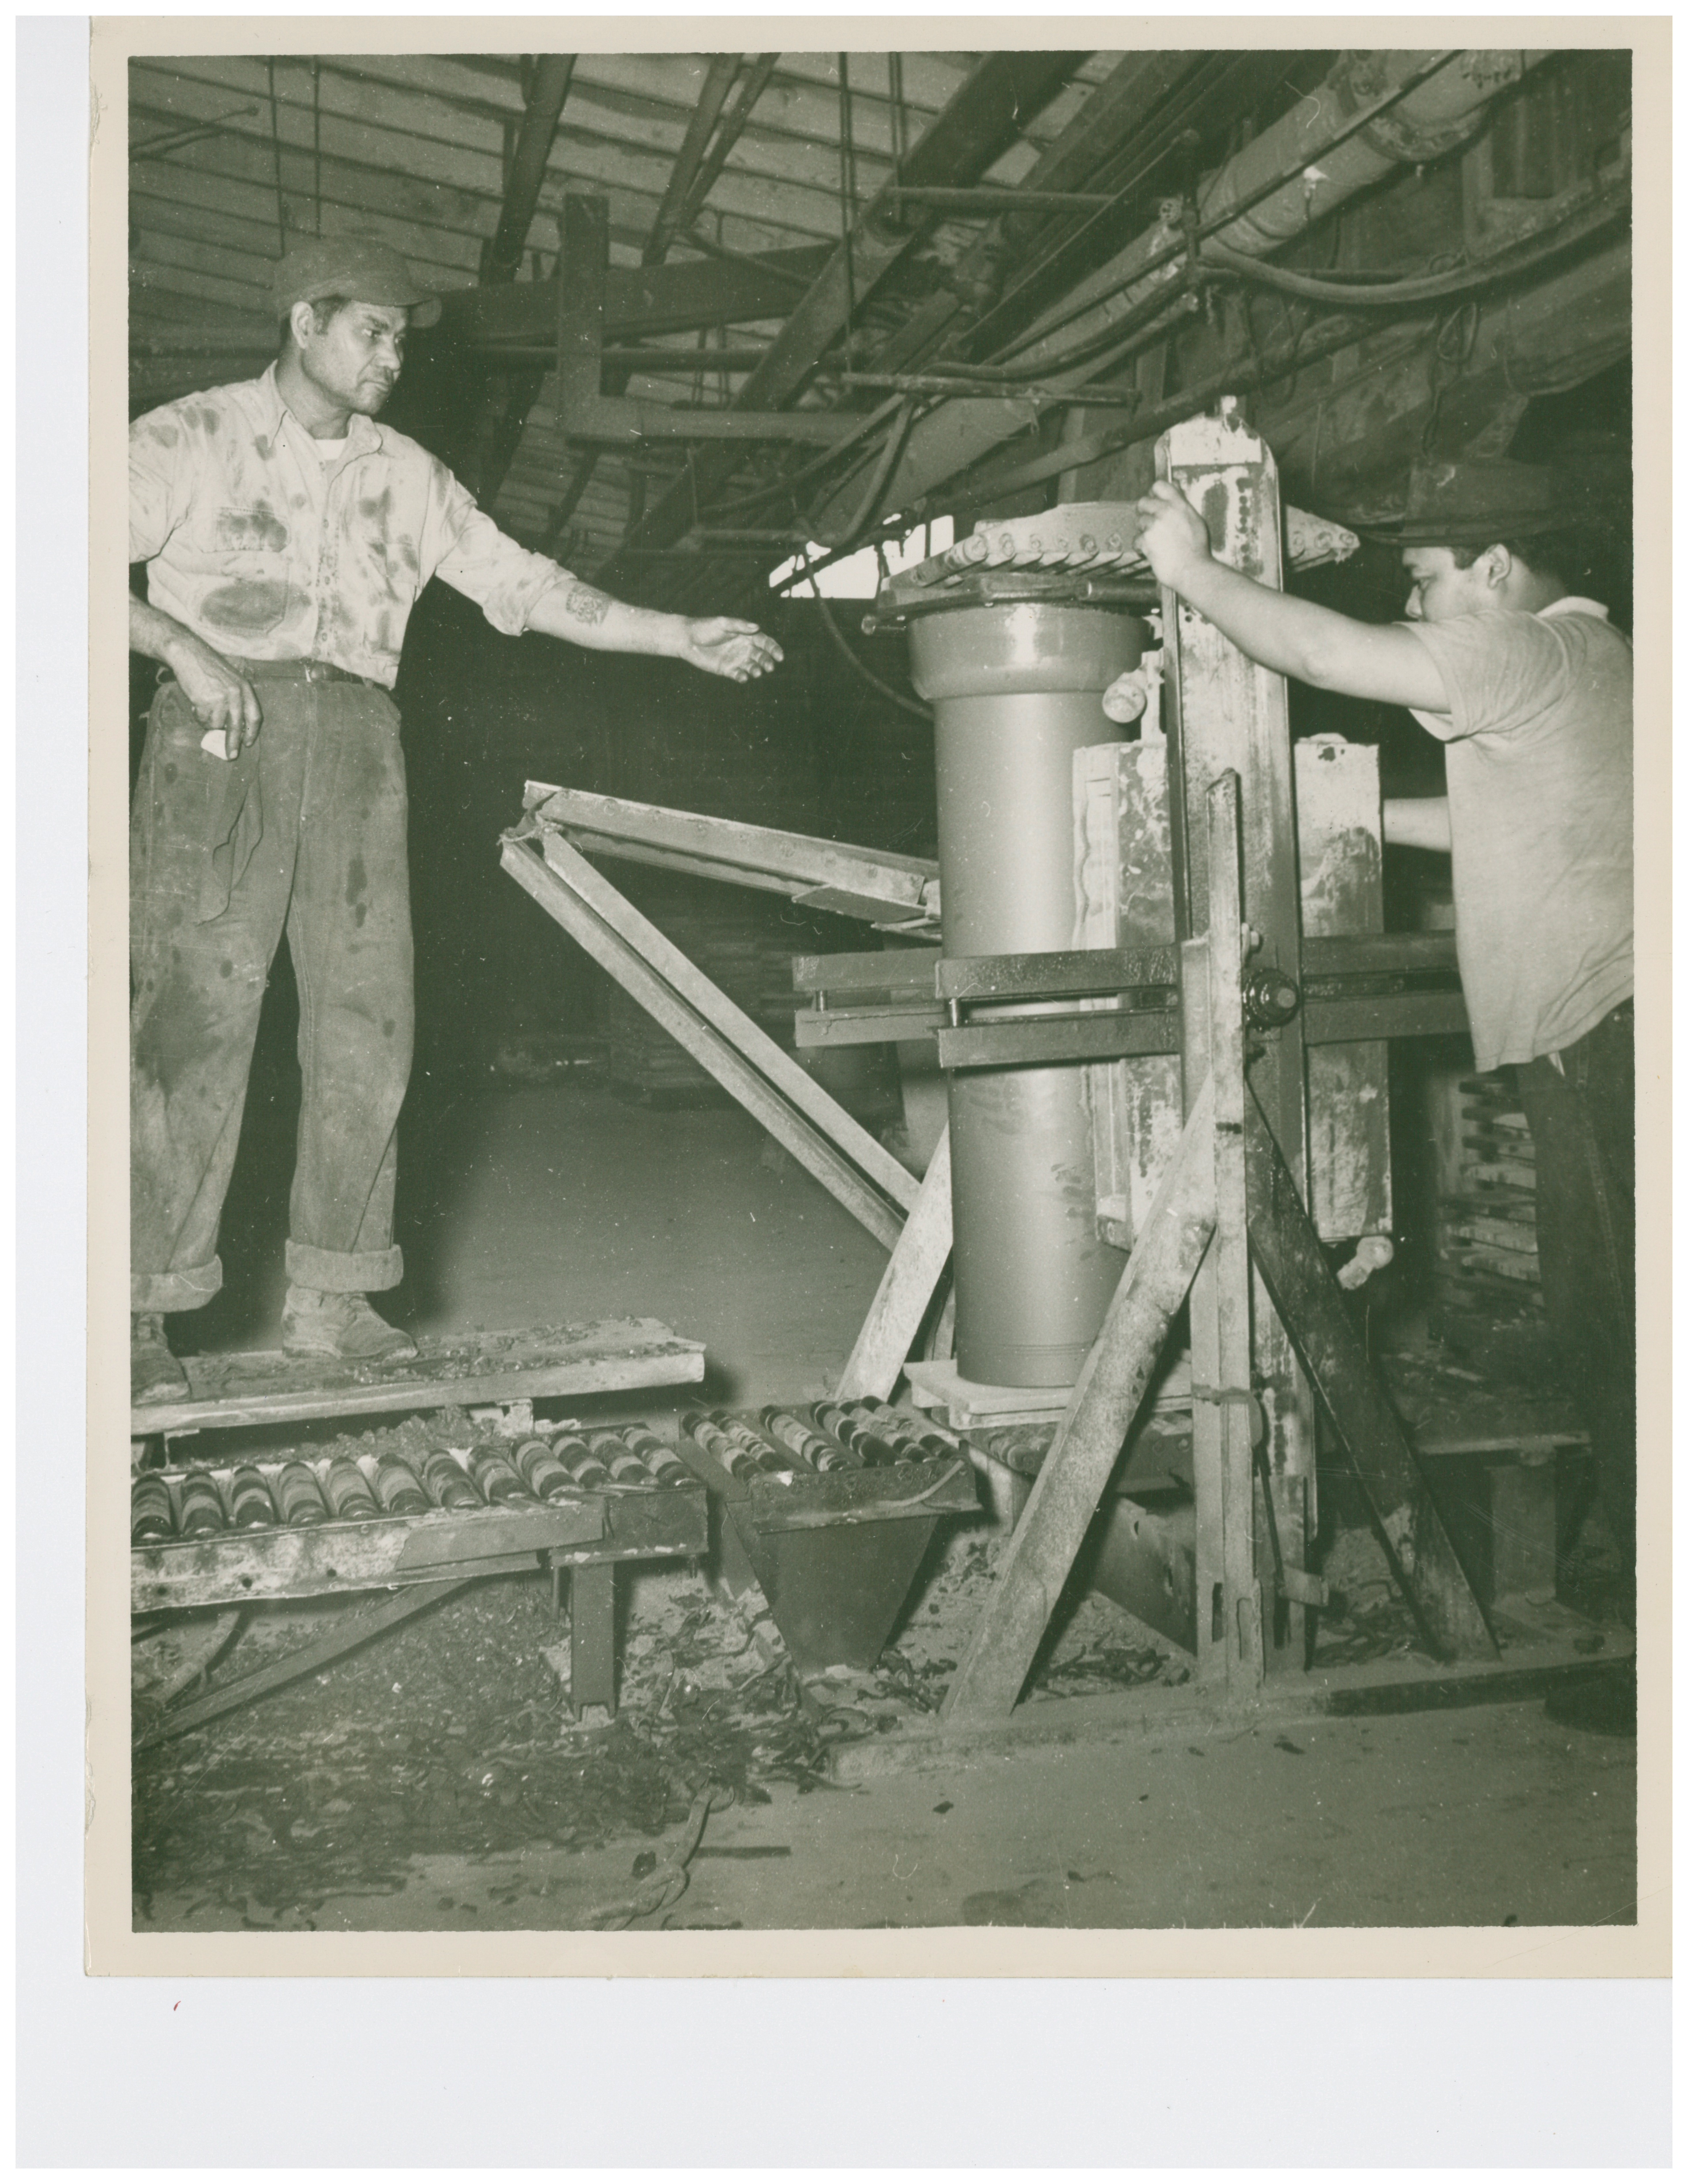 1946 Auger Machine Pressing Sewer Pipe